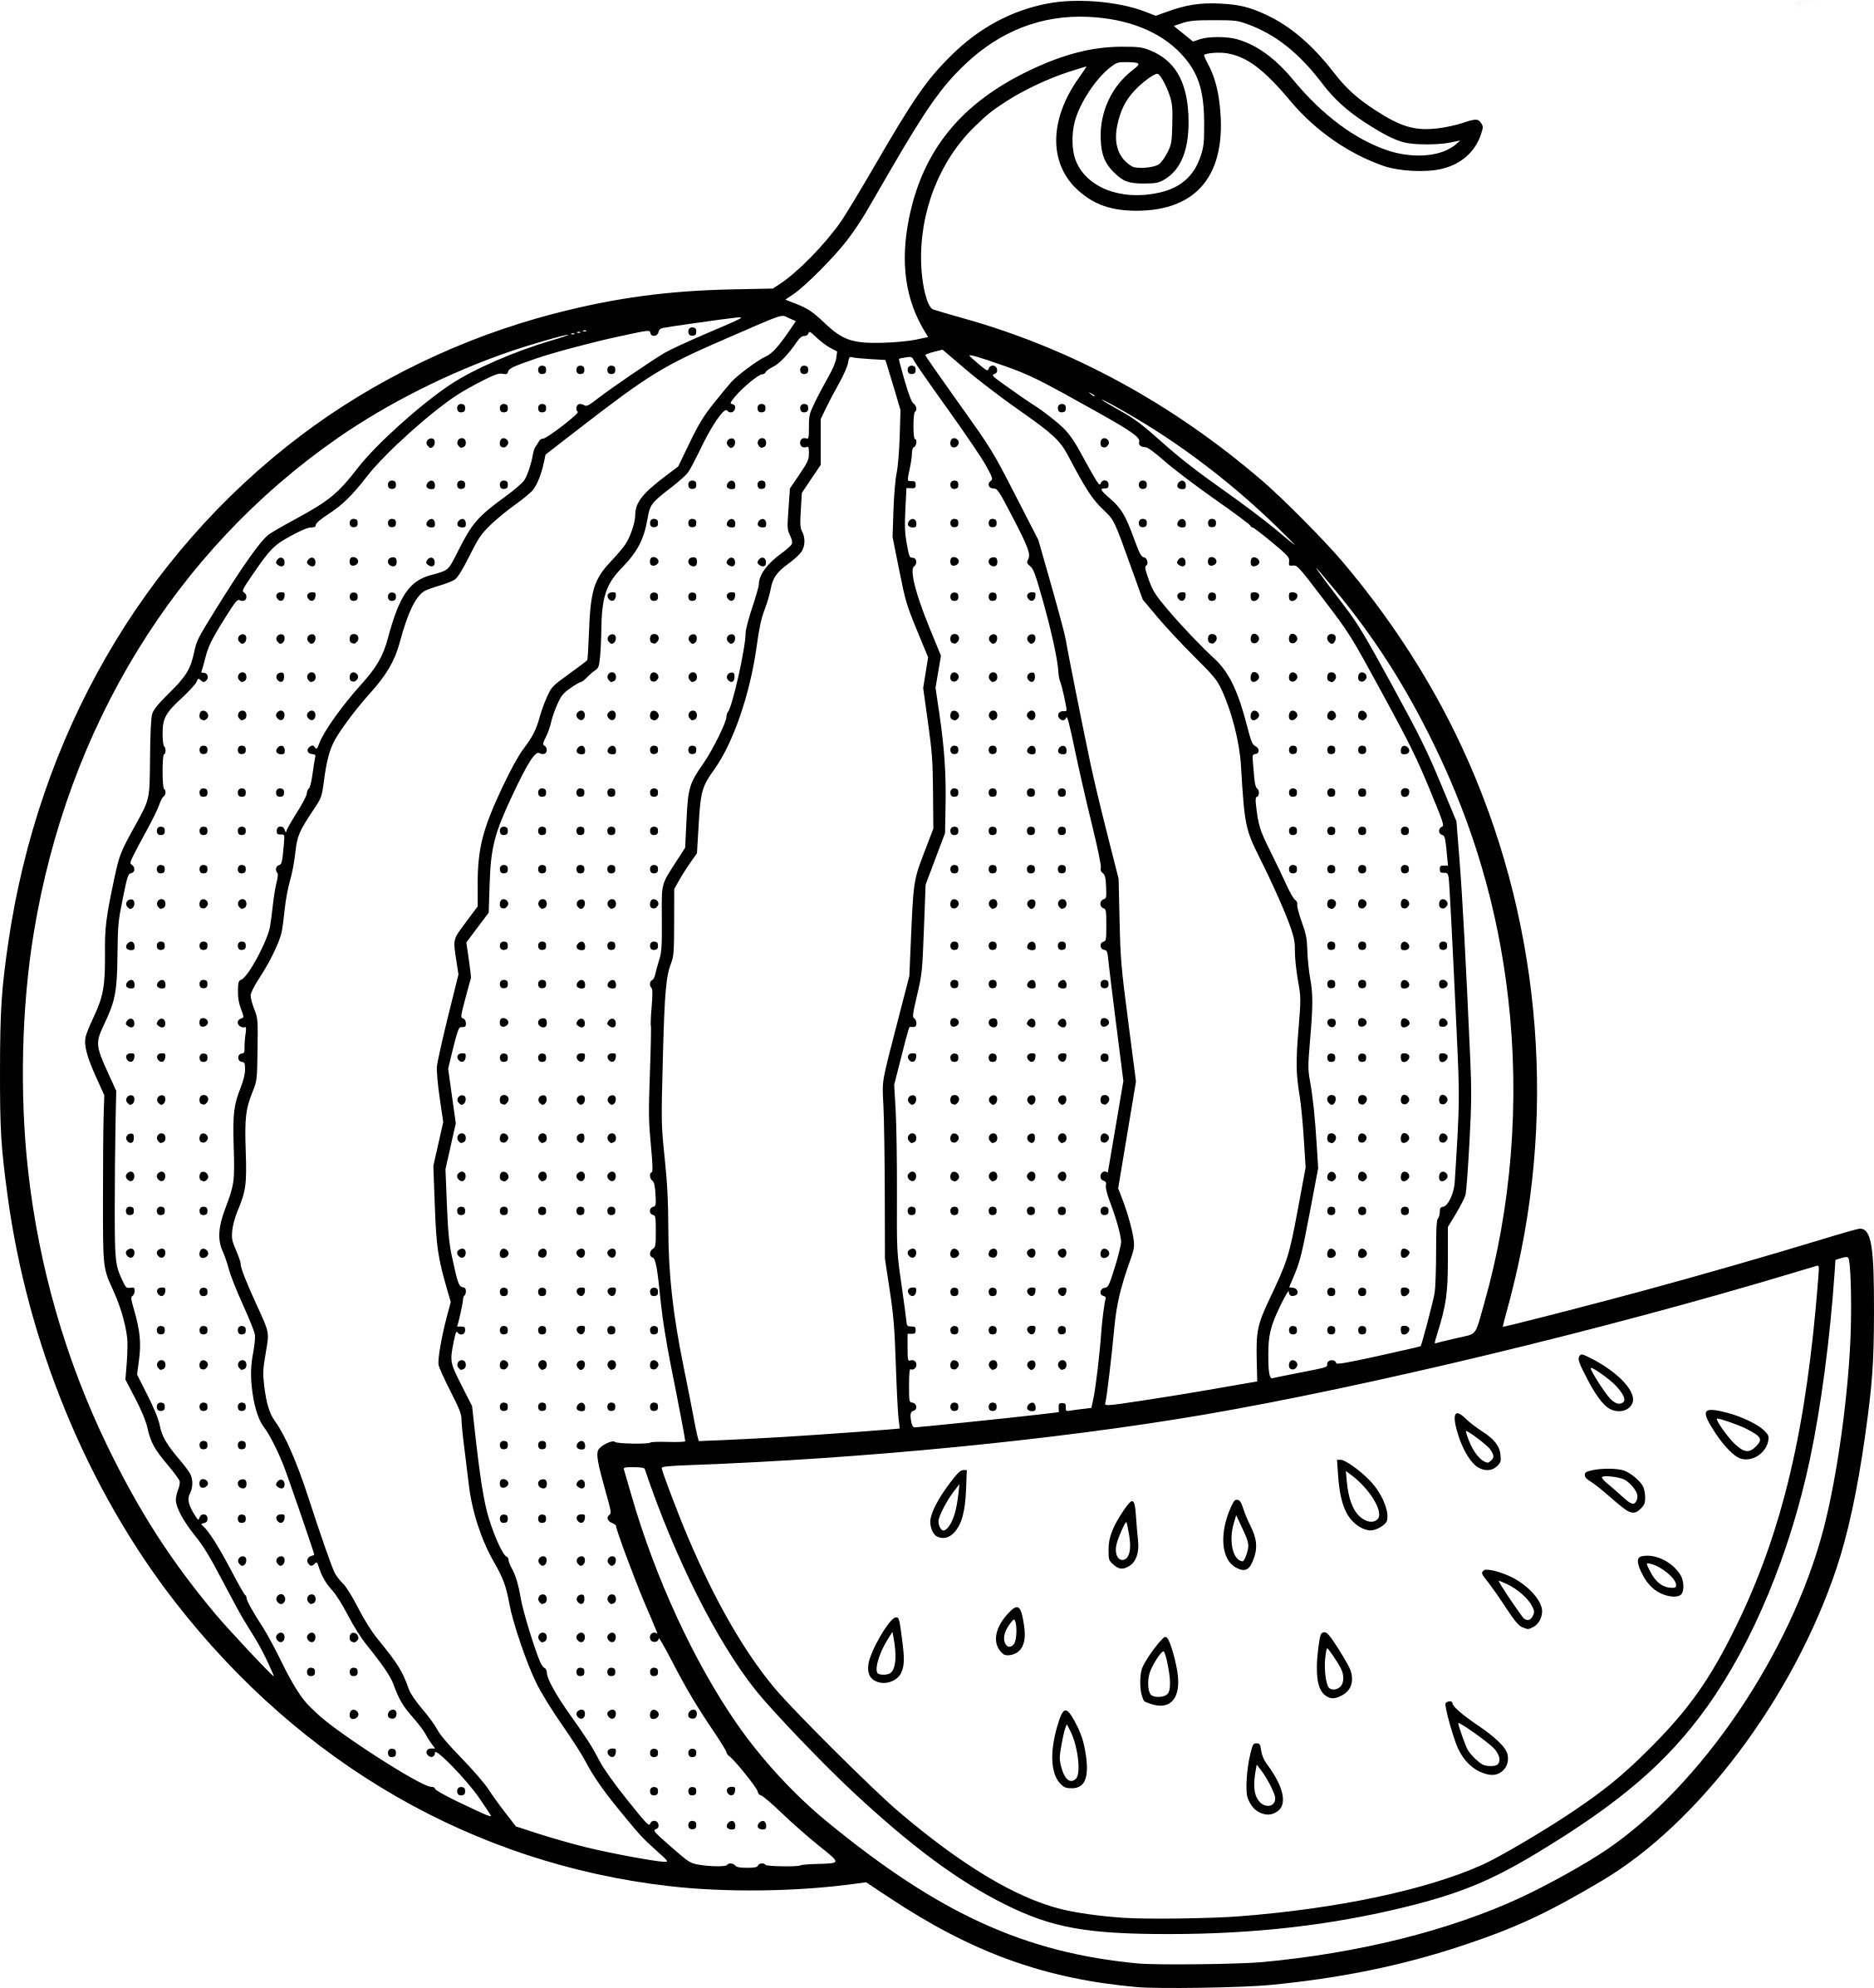 2256x2393 Modest Watermelon Coloring Page